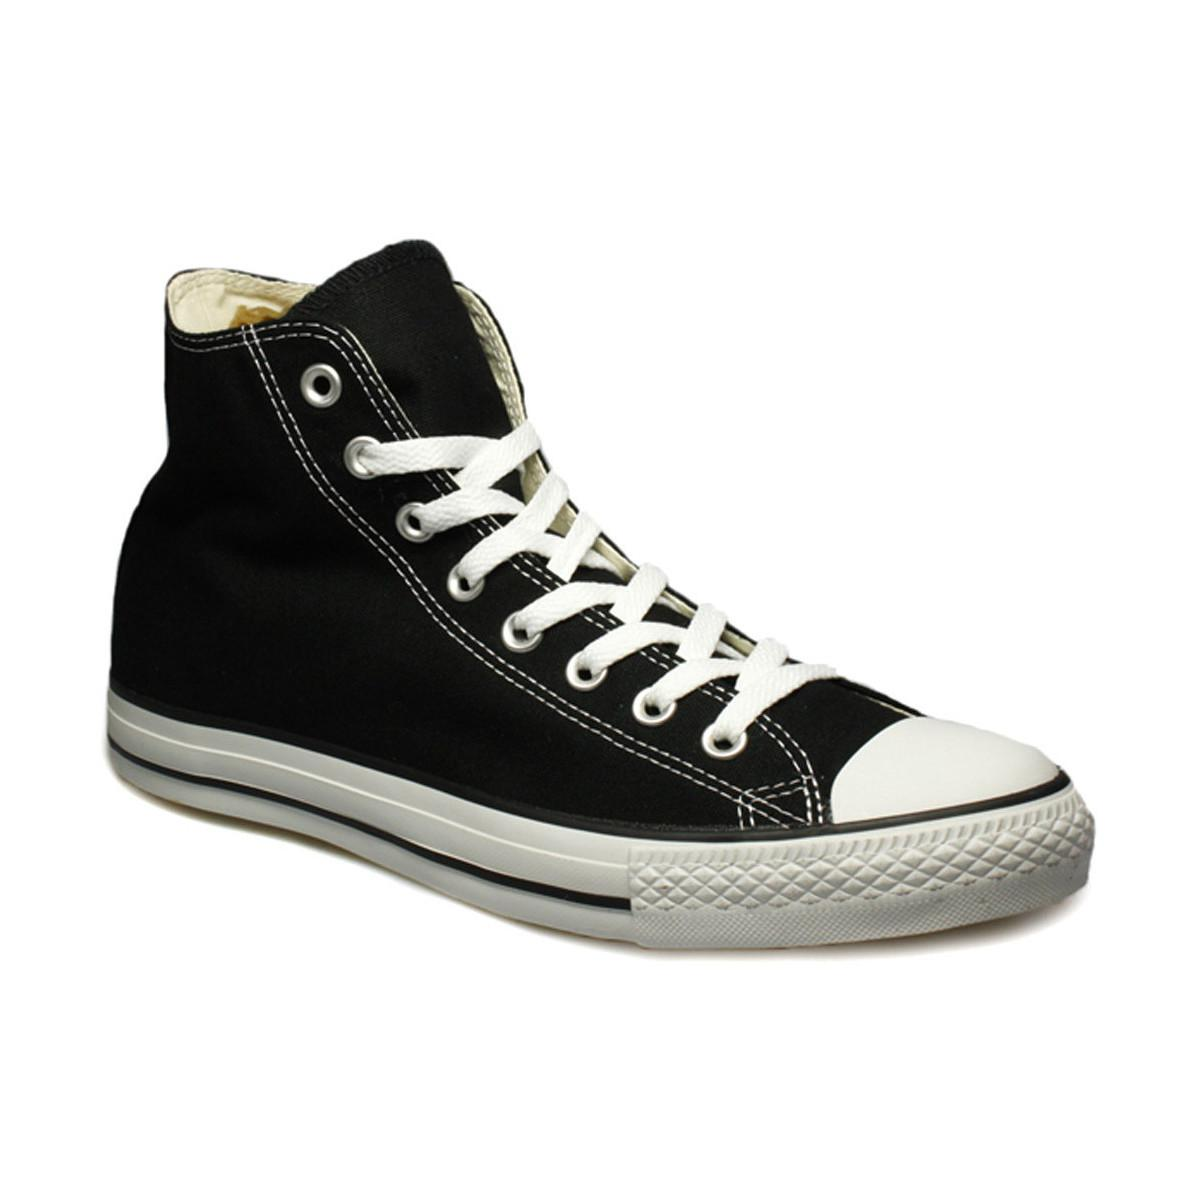 591094df09e7 Converse Mens Womens Black All Star Hi Trainers Men s Shoes (high ...